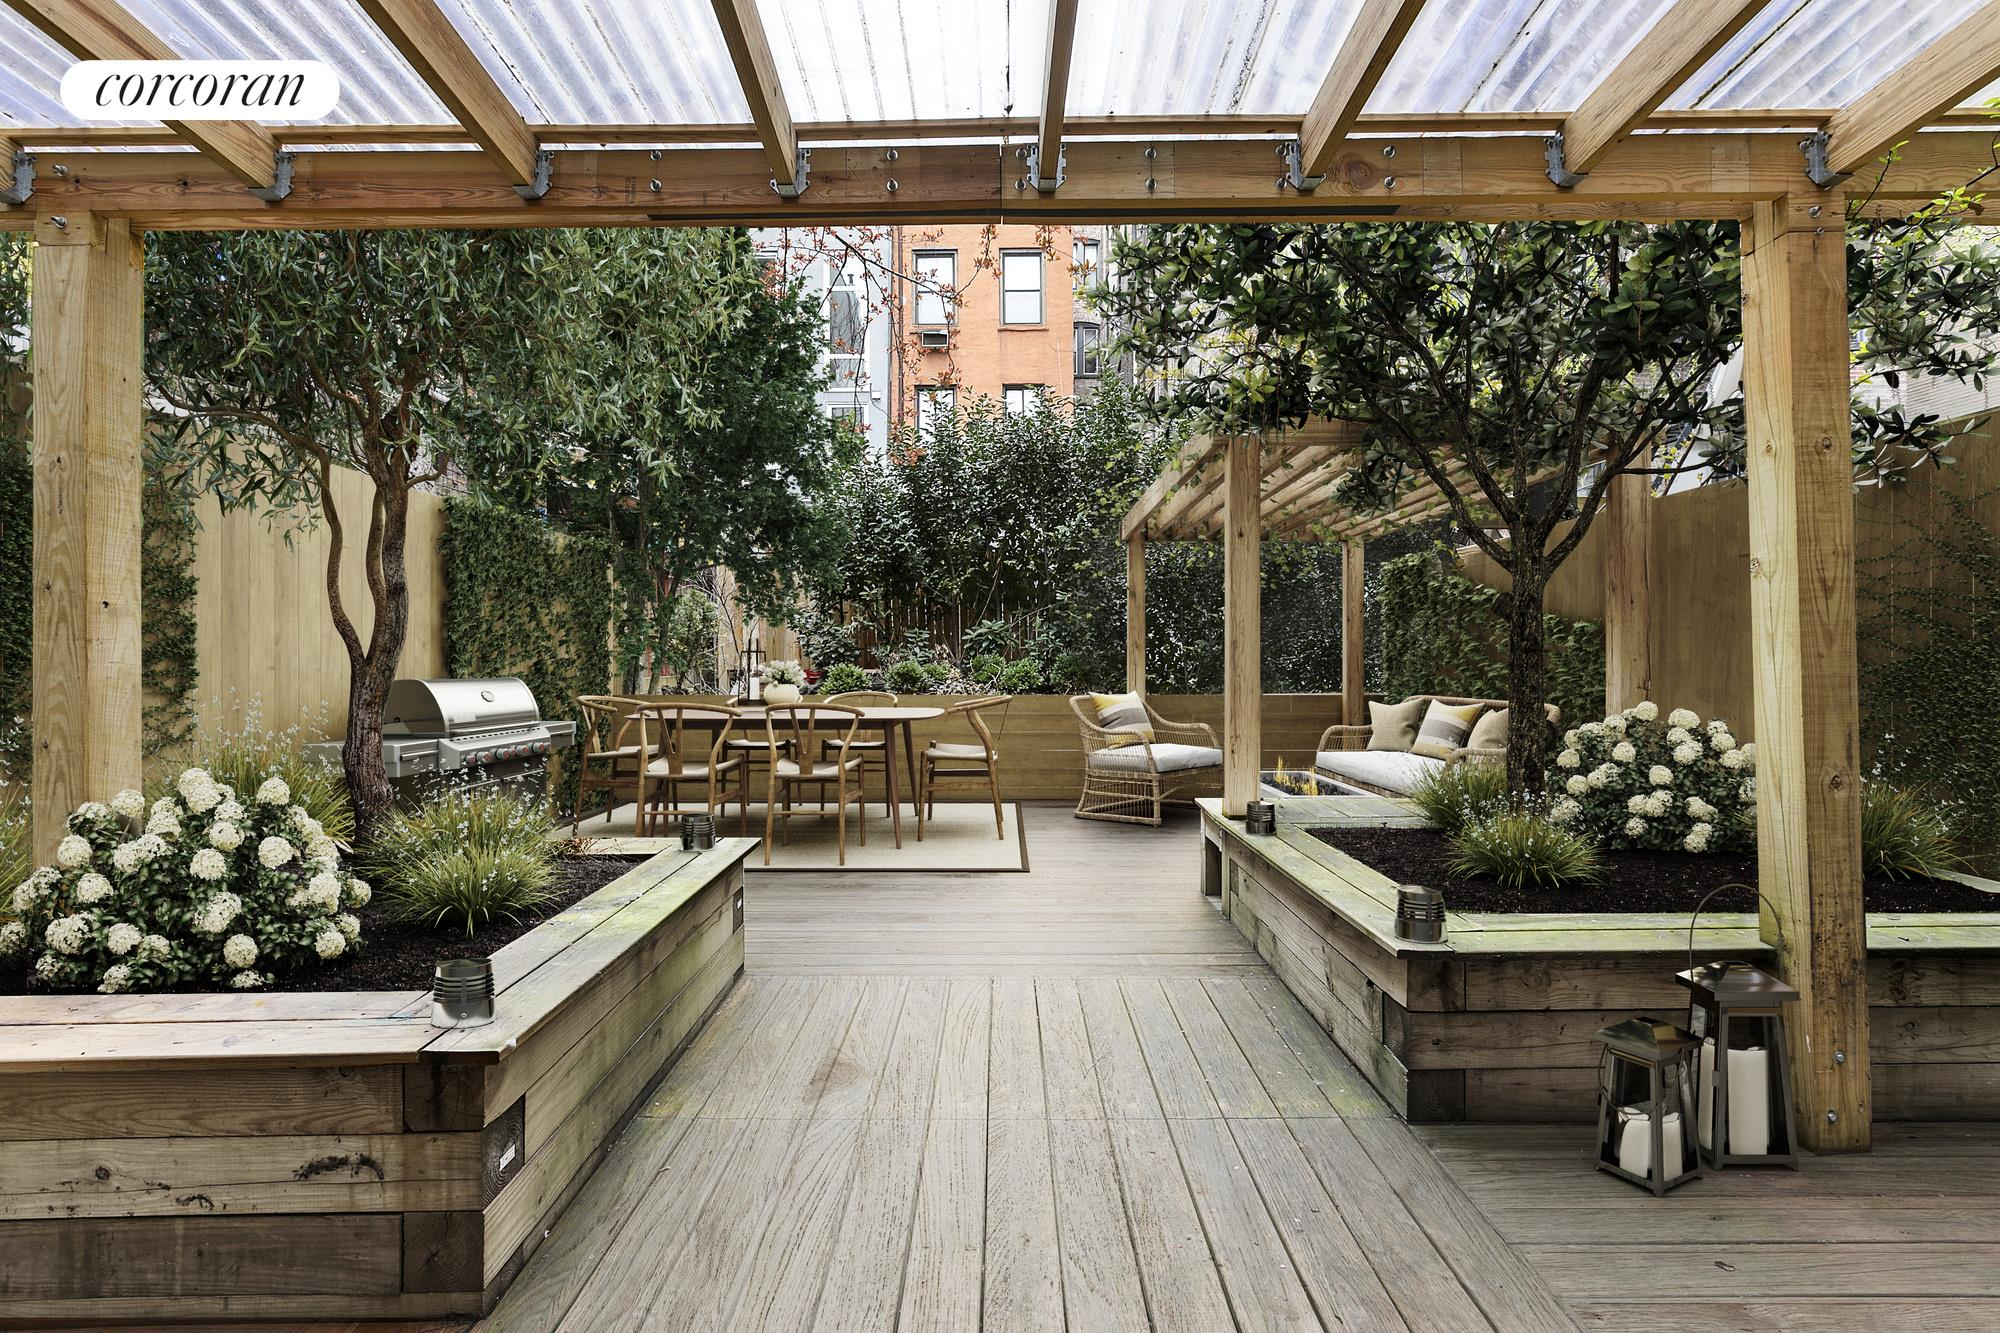 245 West 24th Street, GARDEN, PRIVATE OUTDOOR SPACE